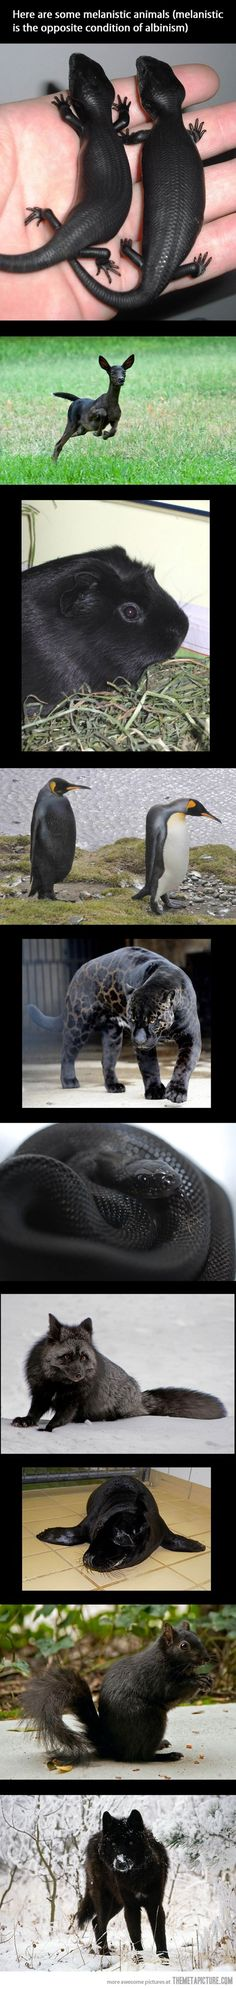 Funny black animals skin